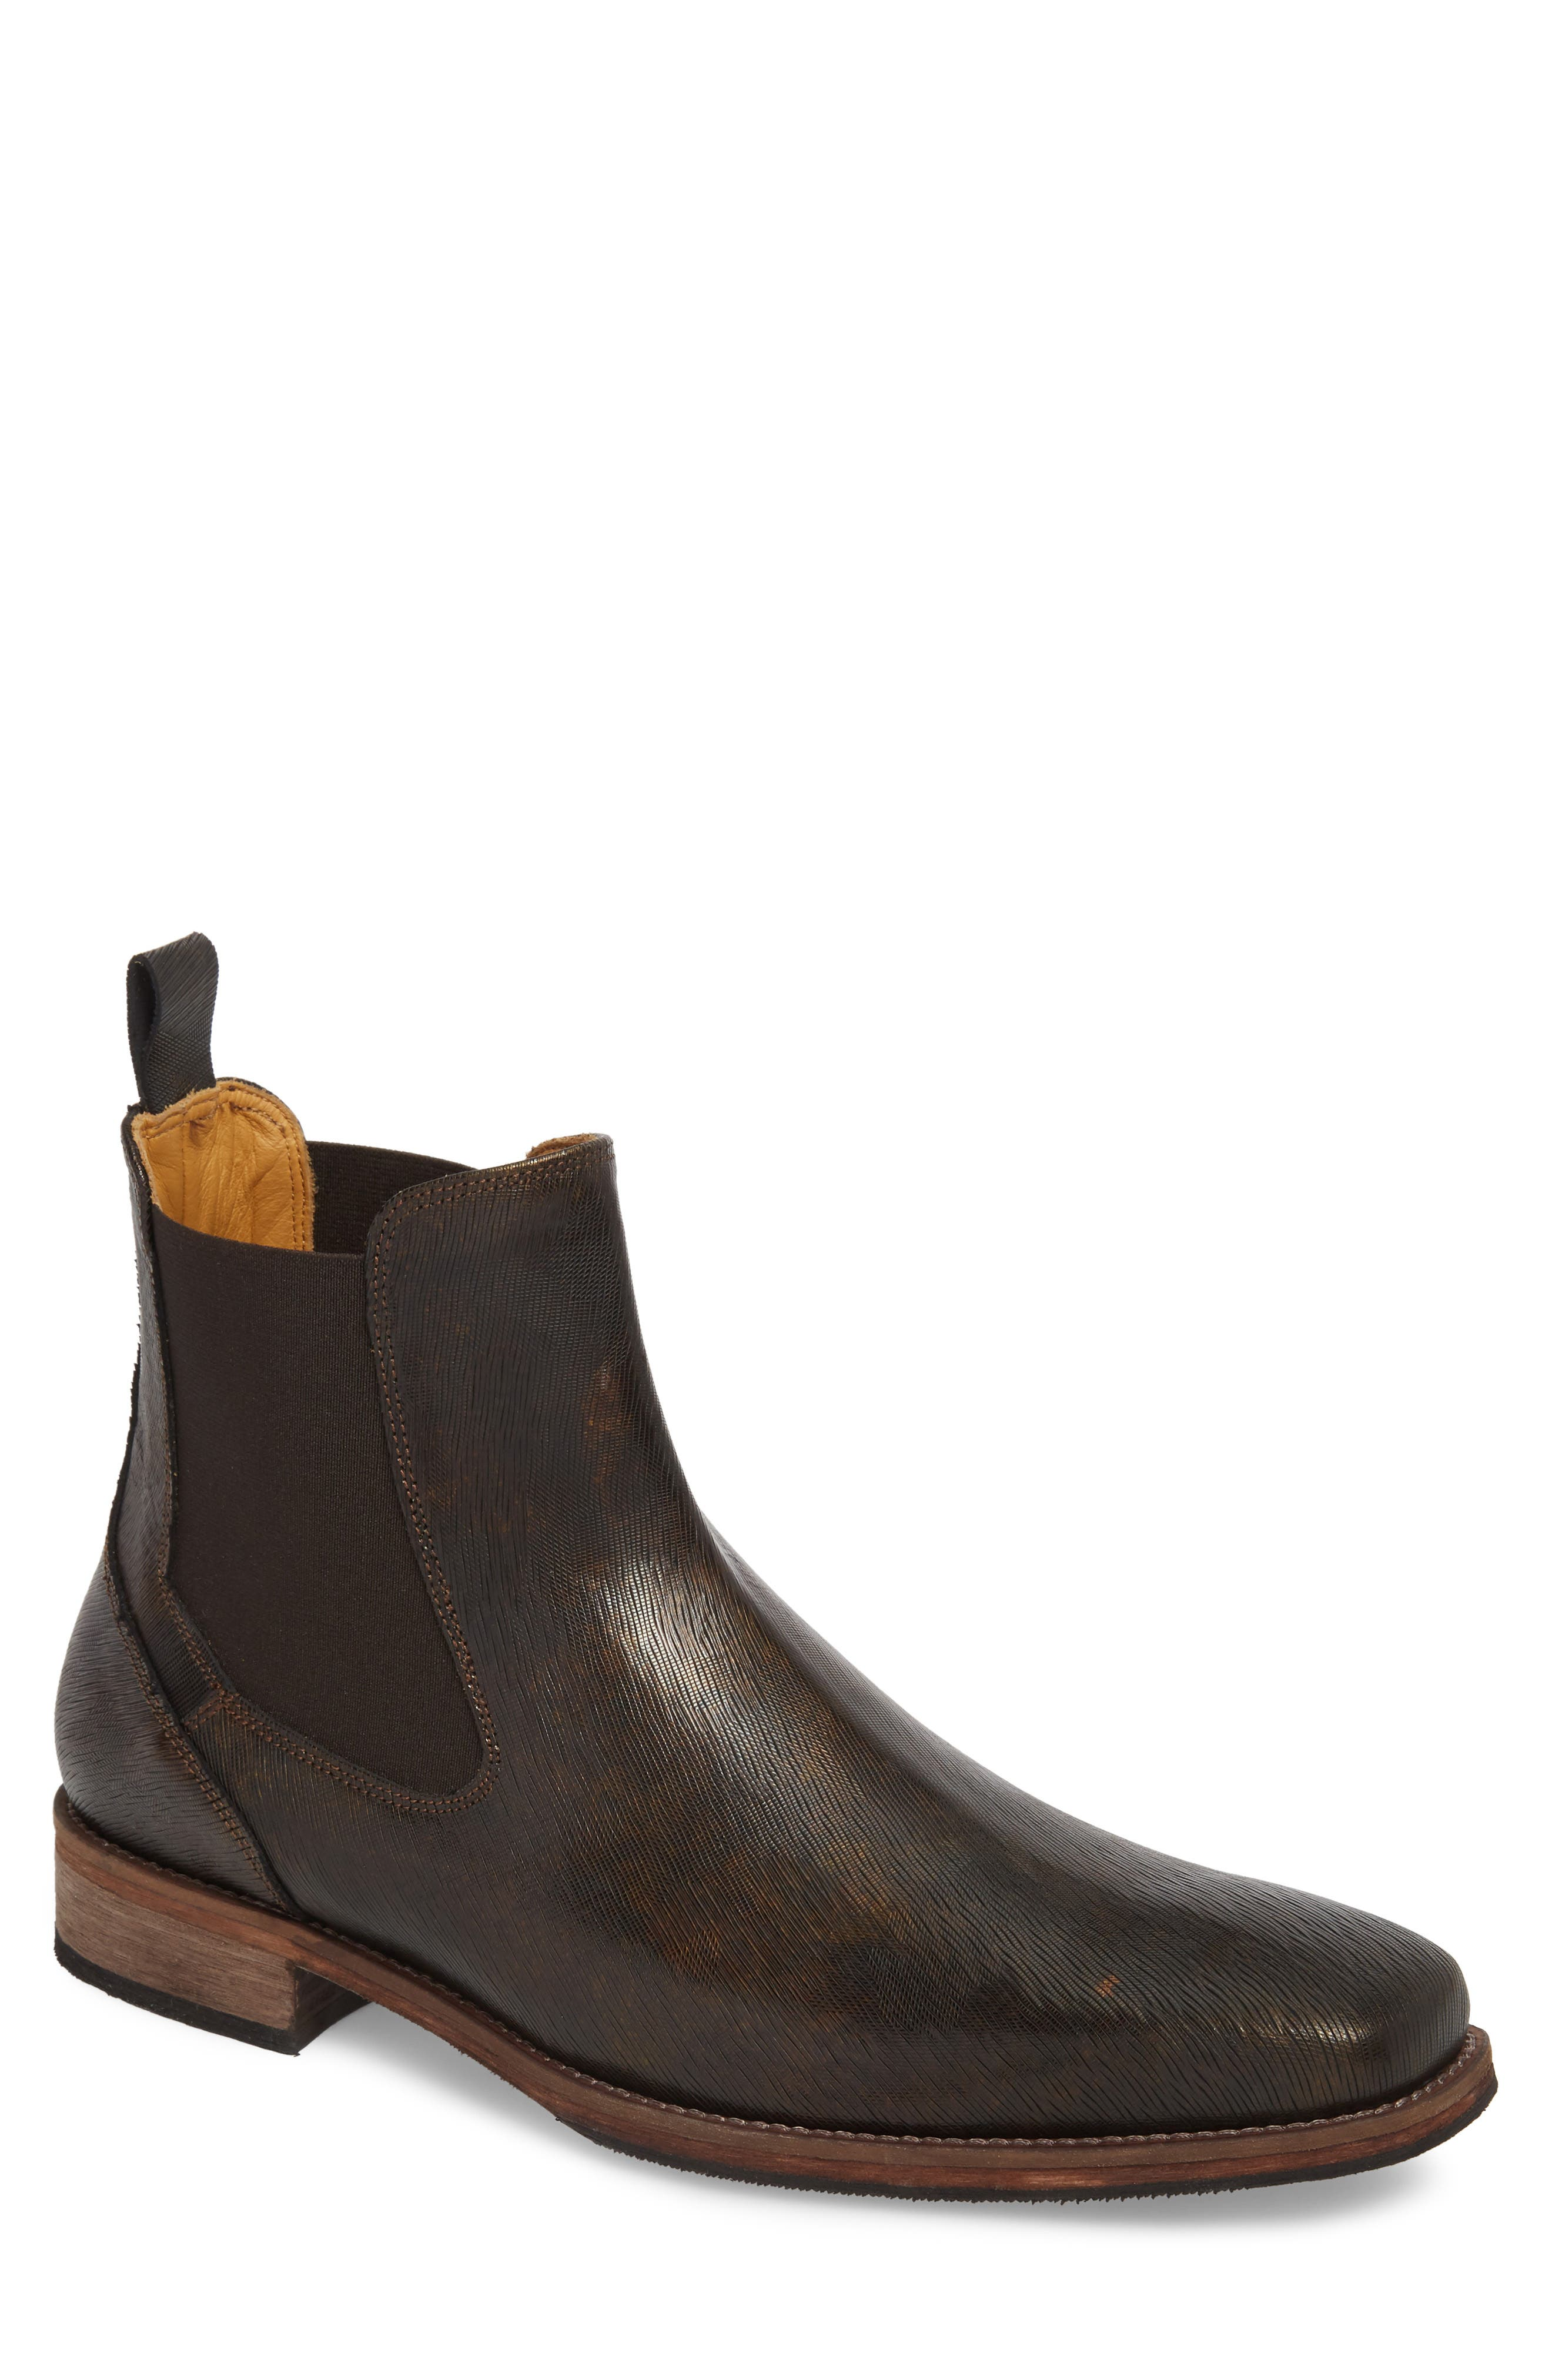 Roderick Mid Chelsea Boot,                         Main,                         color, RUST CAMO